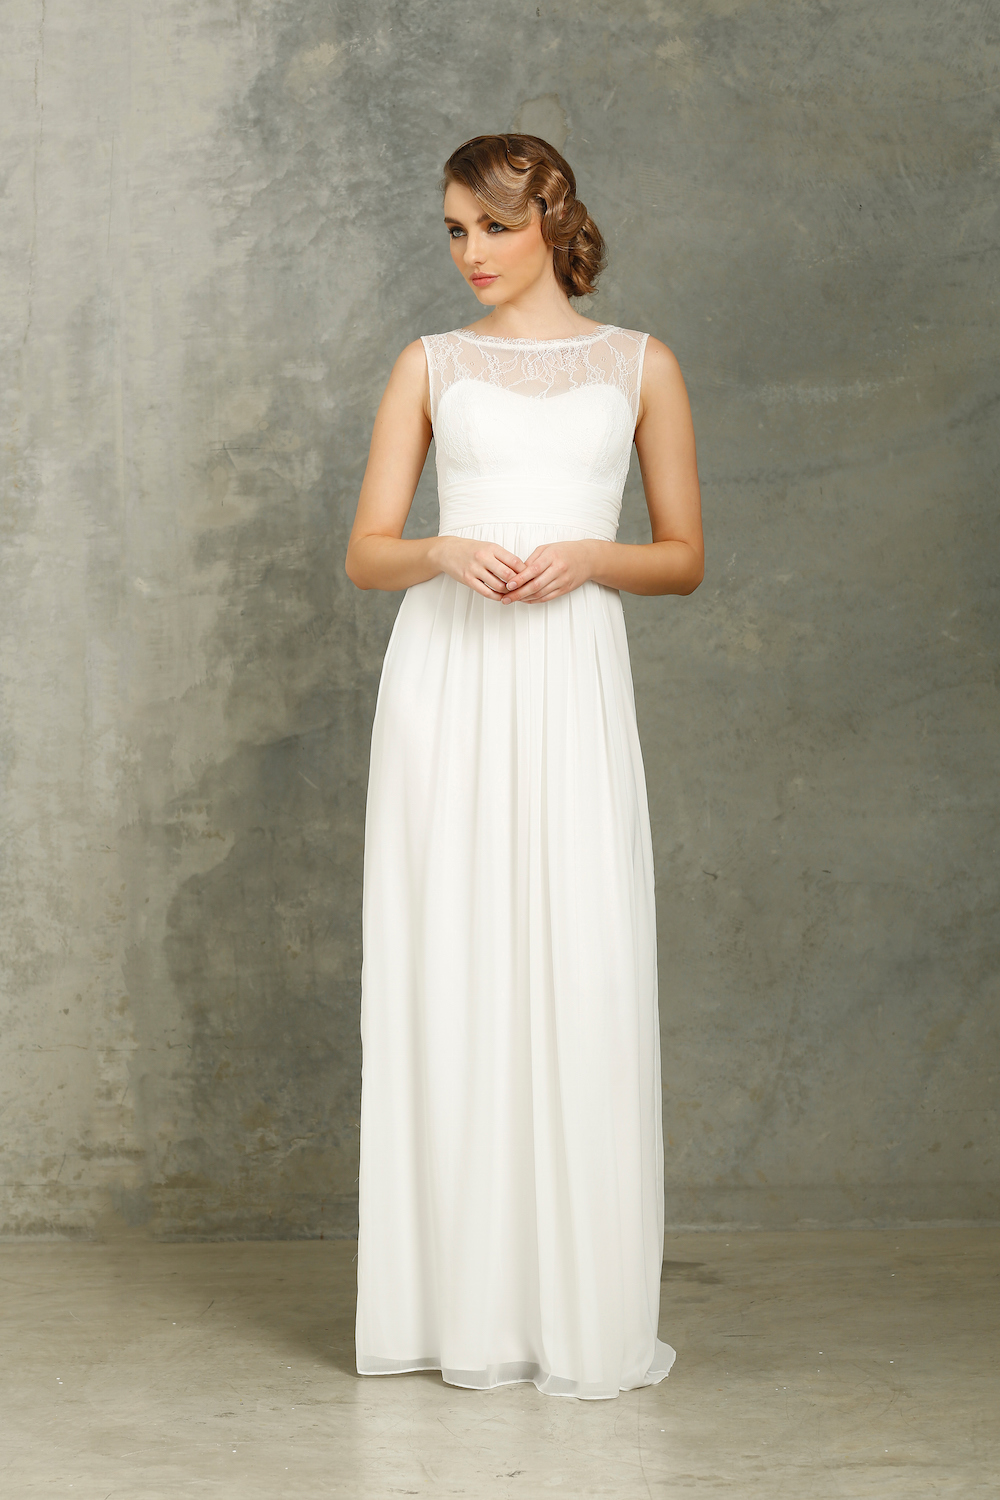 Charlotte White Wedding Dress